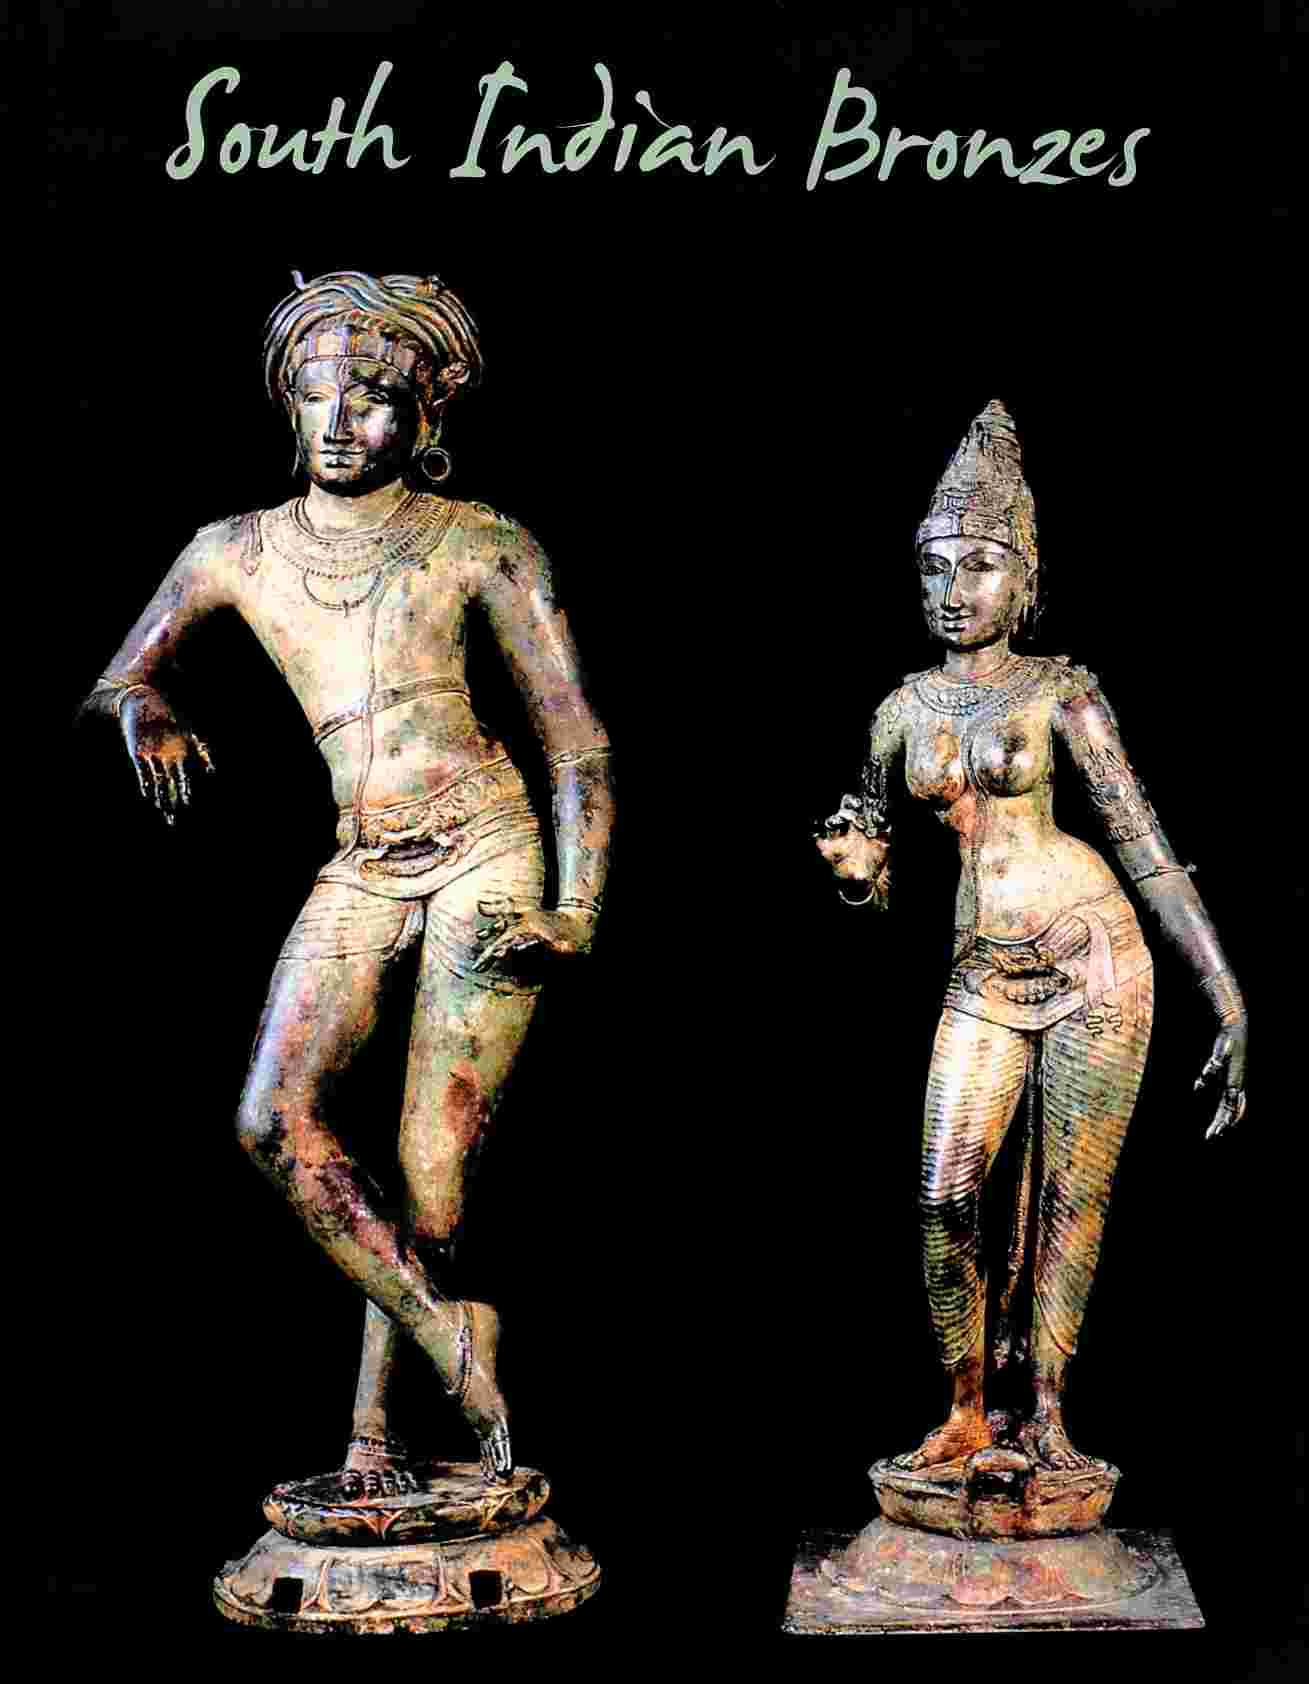 Book South Indian Bronzes